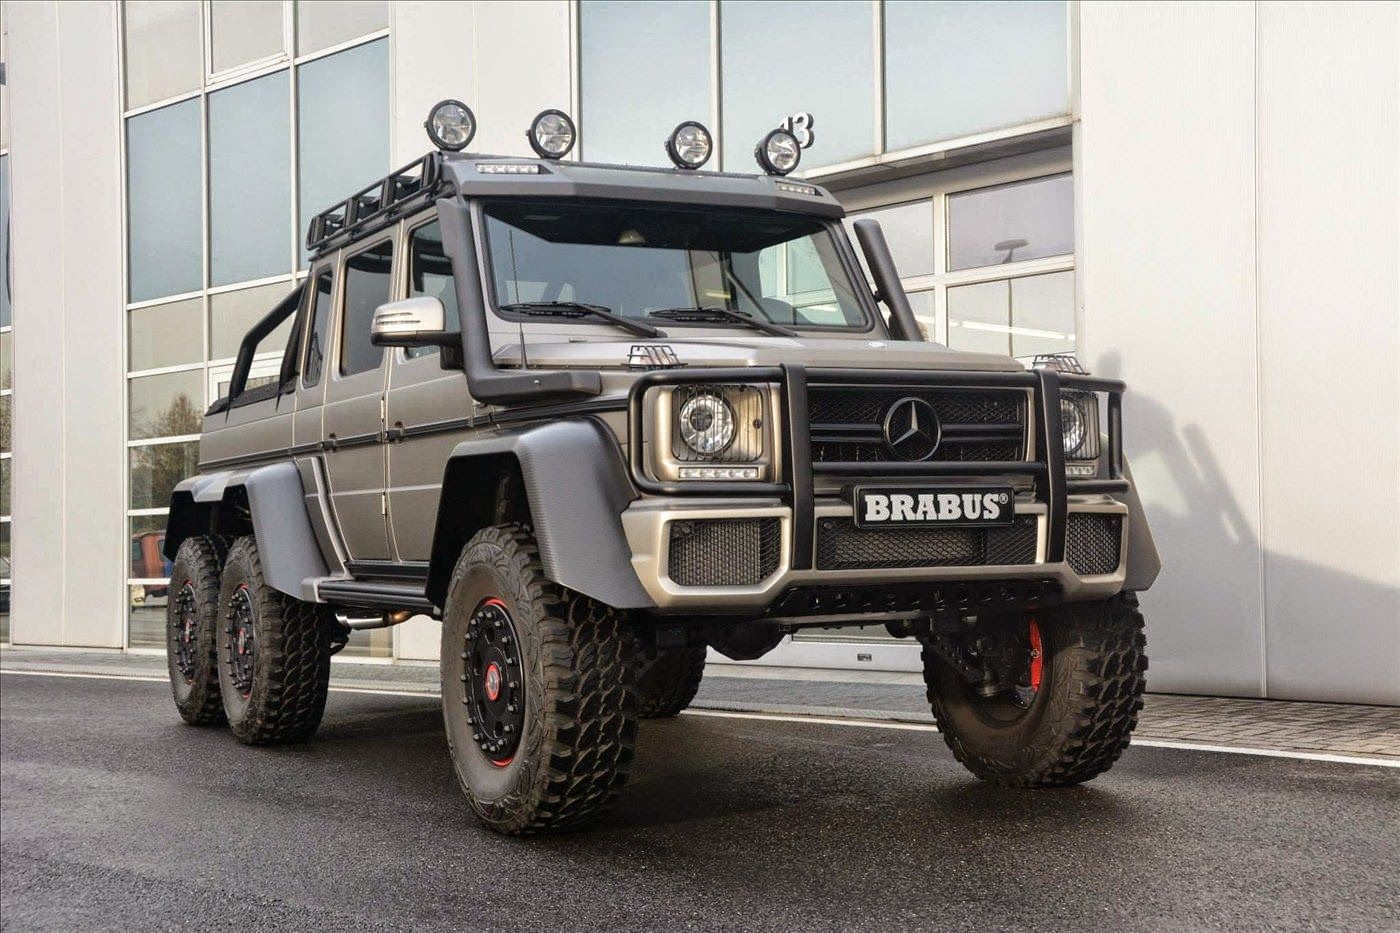 Mercedes Benz G63 Amg Brabus 6x6 With Images Mercedes G63